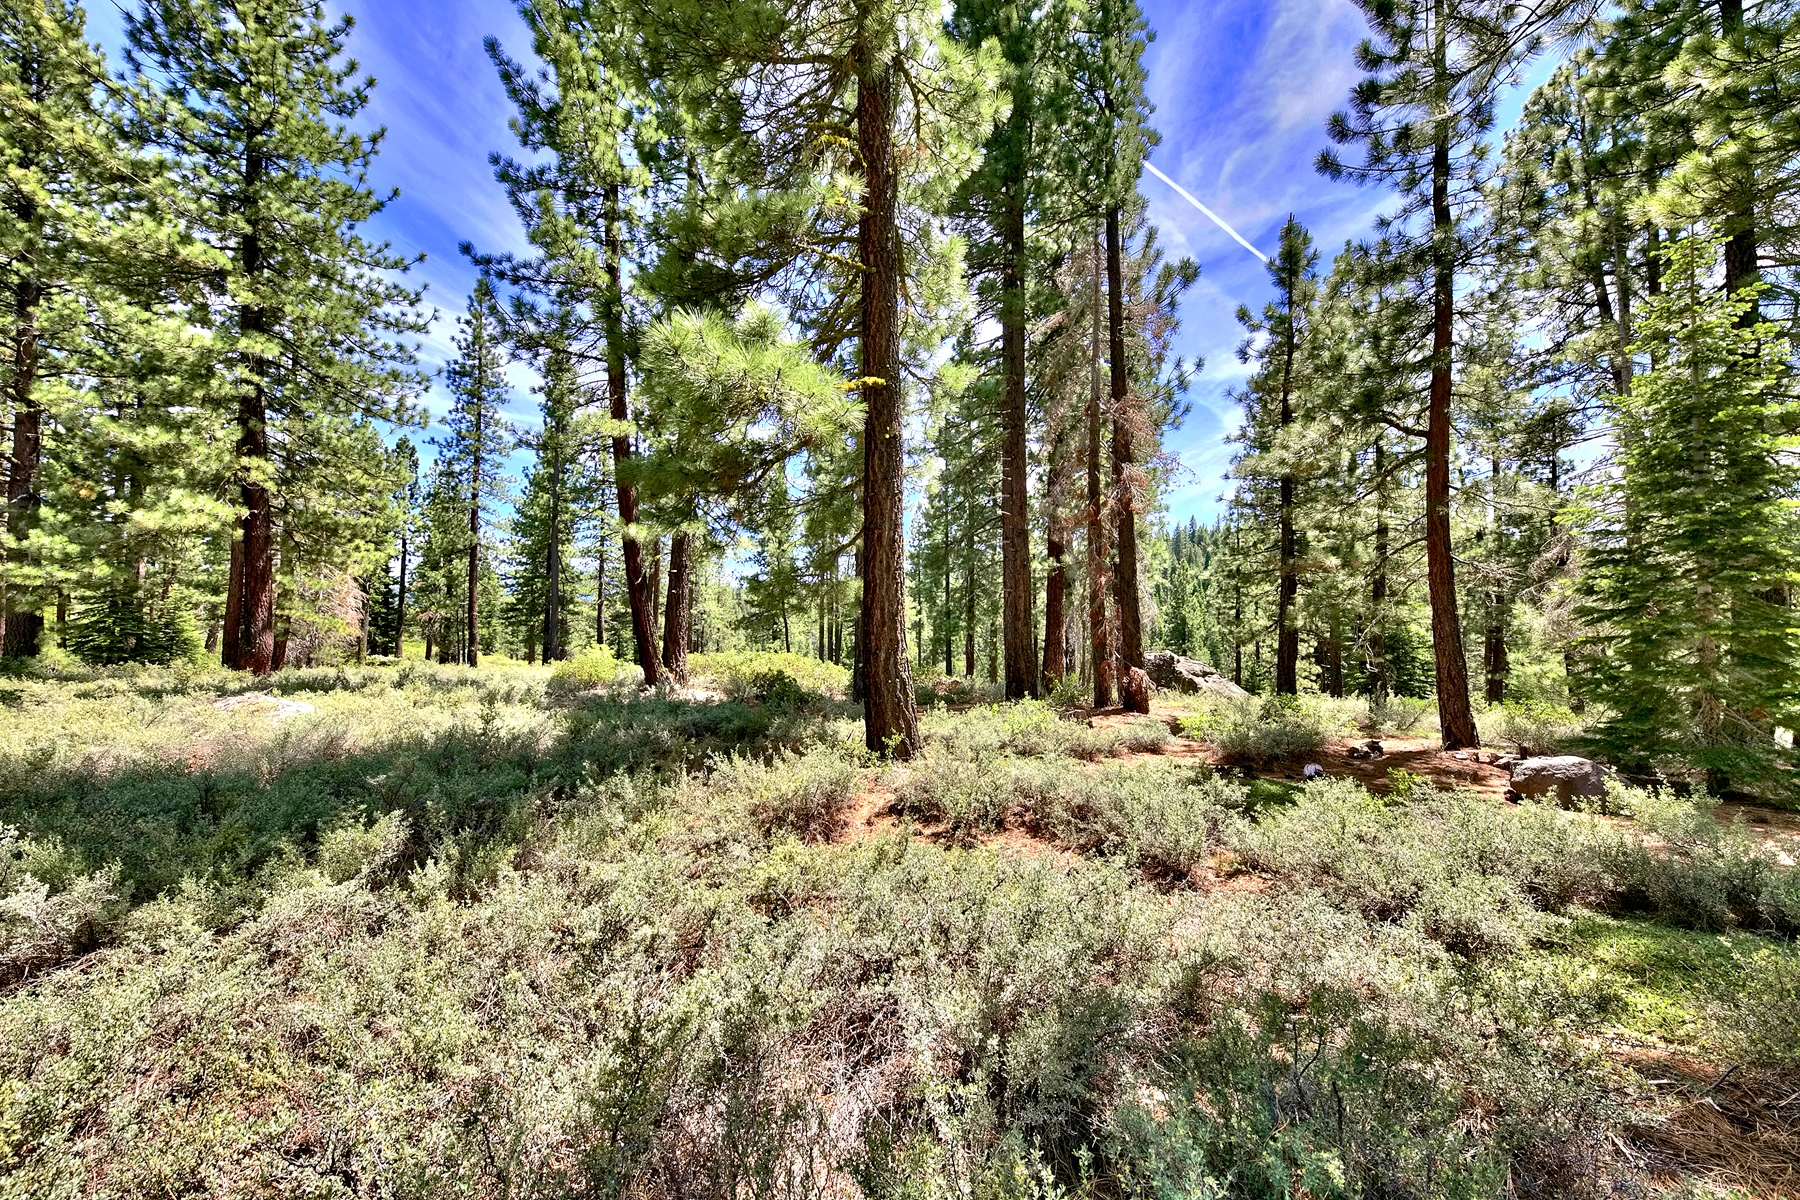 Additional photo for property listing at Rare 23.76 acre parcel 0 Pioneer Trail Truckee, California 96161 United States